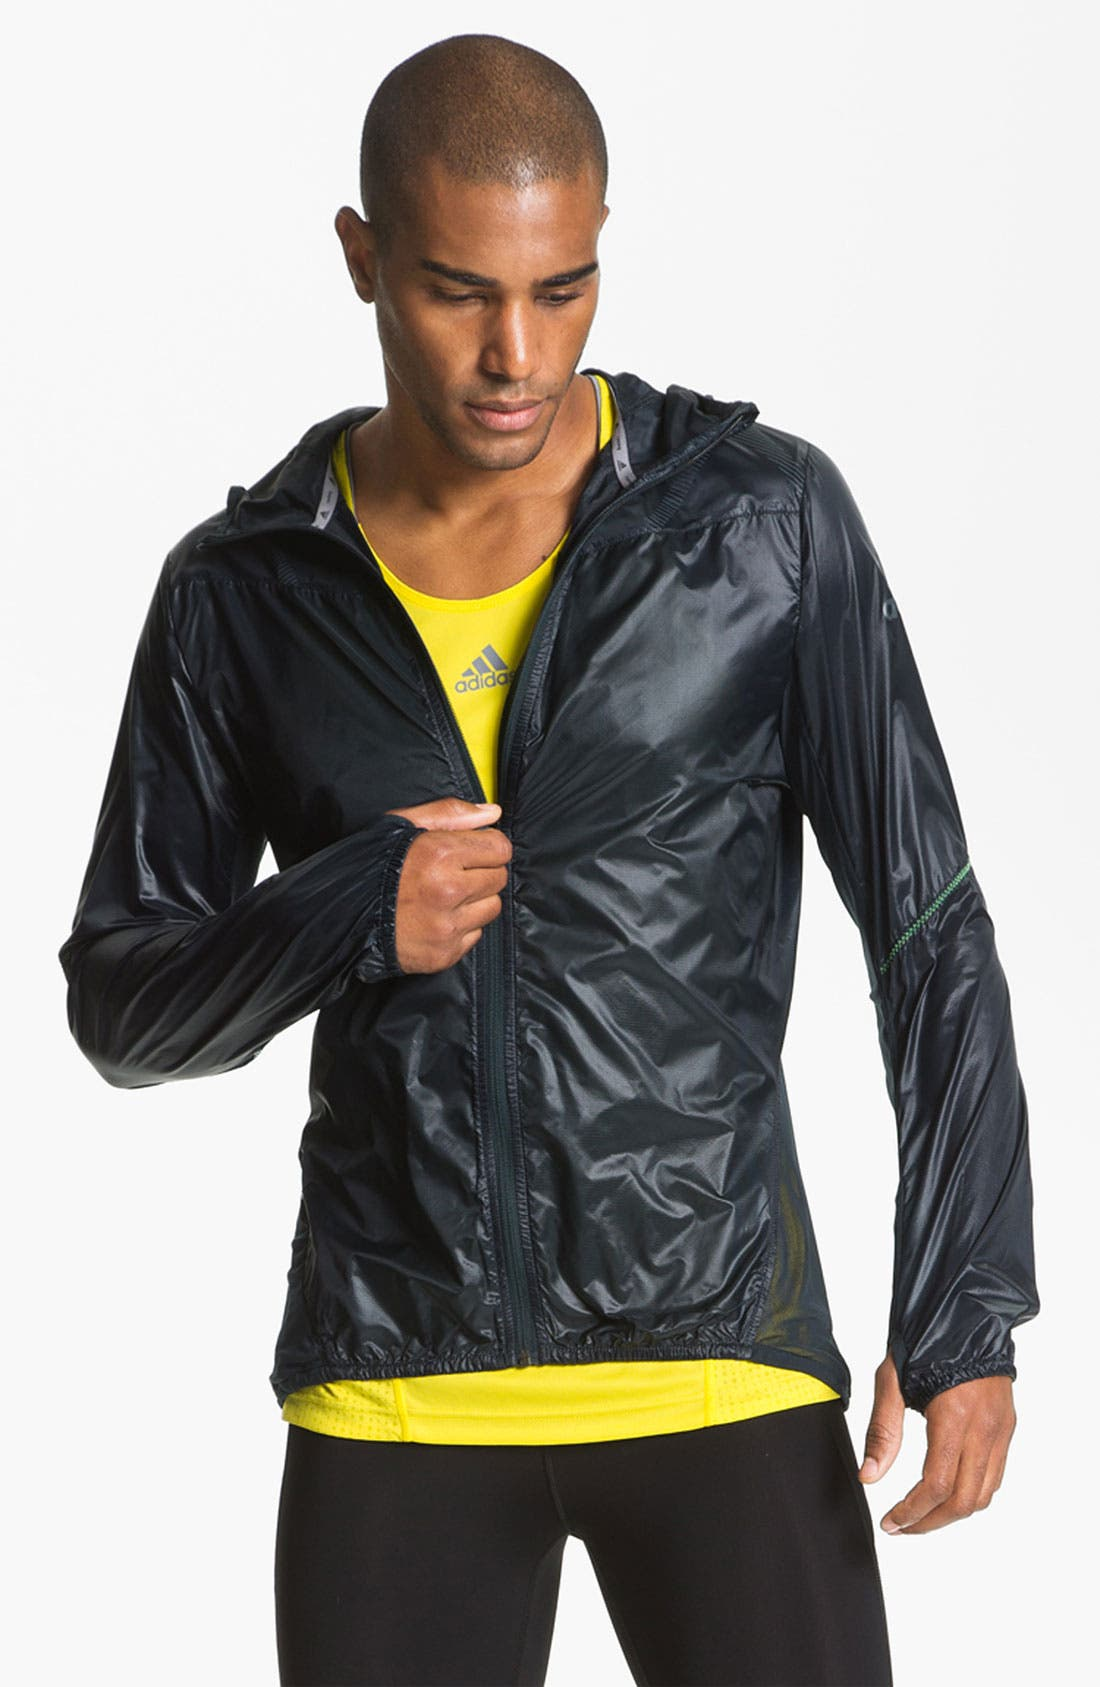 Alternate Image 1 Selected - adidas 'Fast Roadrunner' Jacket